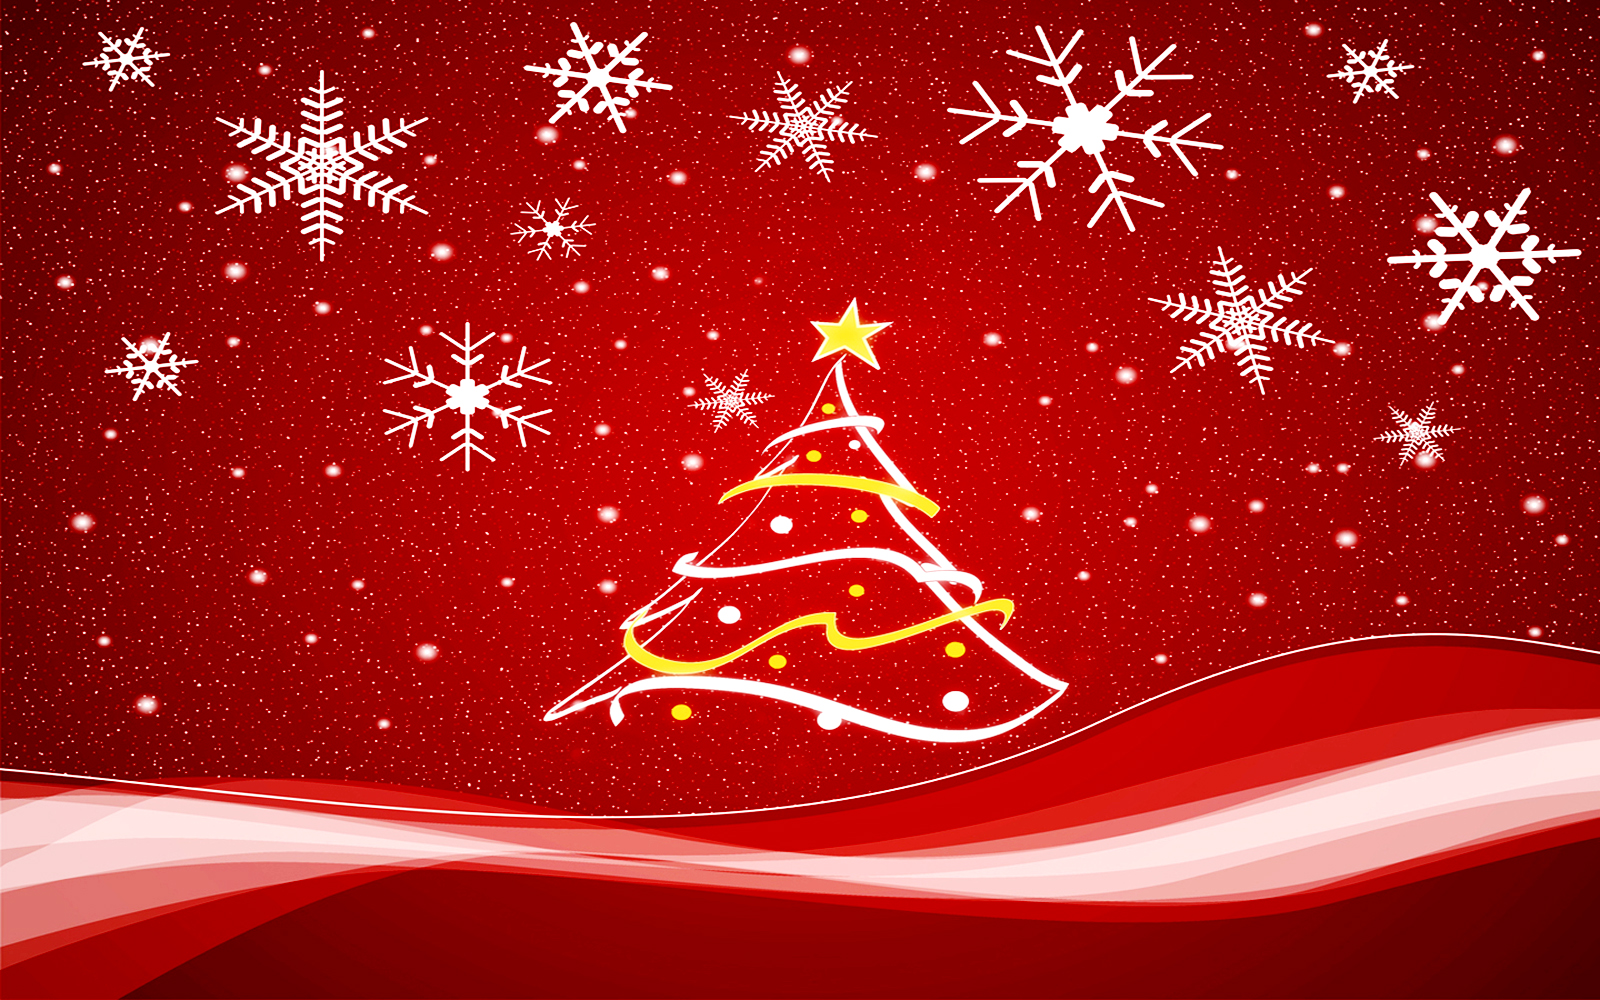 Central Wallpaper: Christmas Tree HD Wallpapers